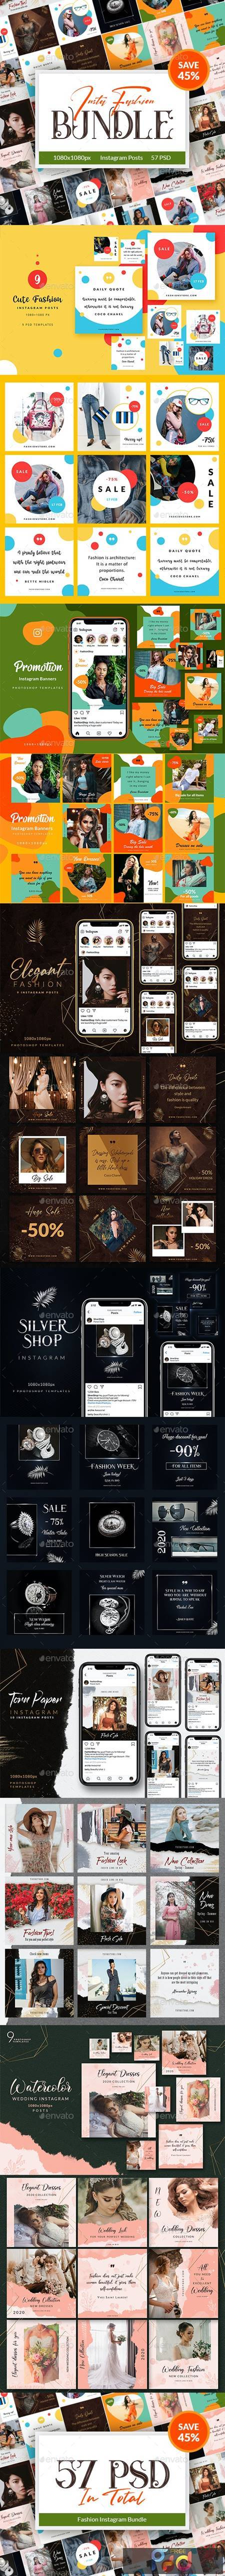 57 Fashion Instagram Posts Bundle 26981307 1